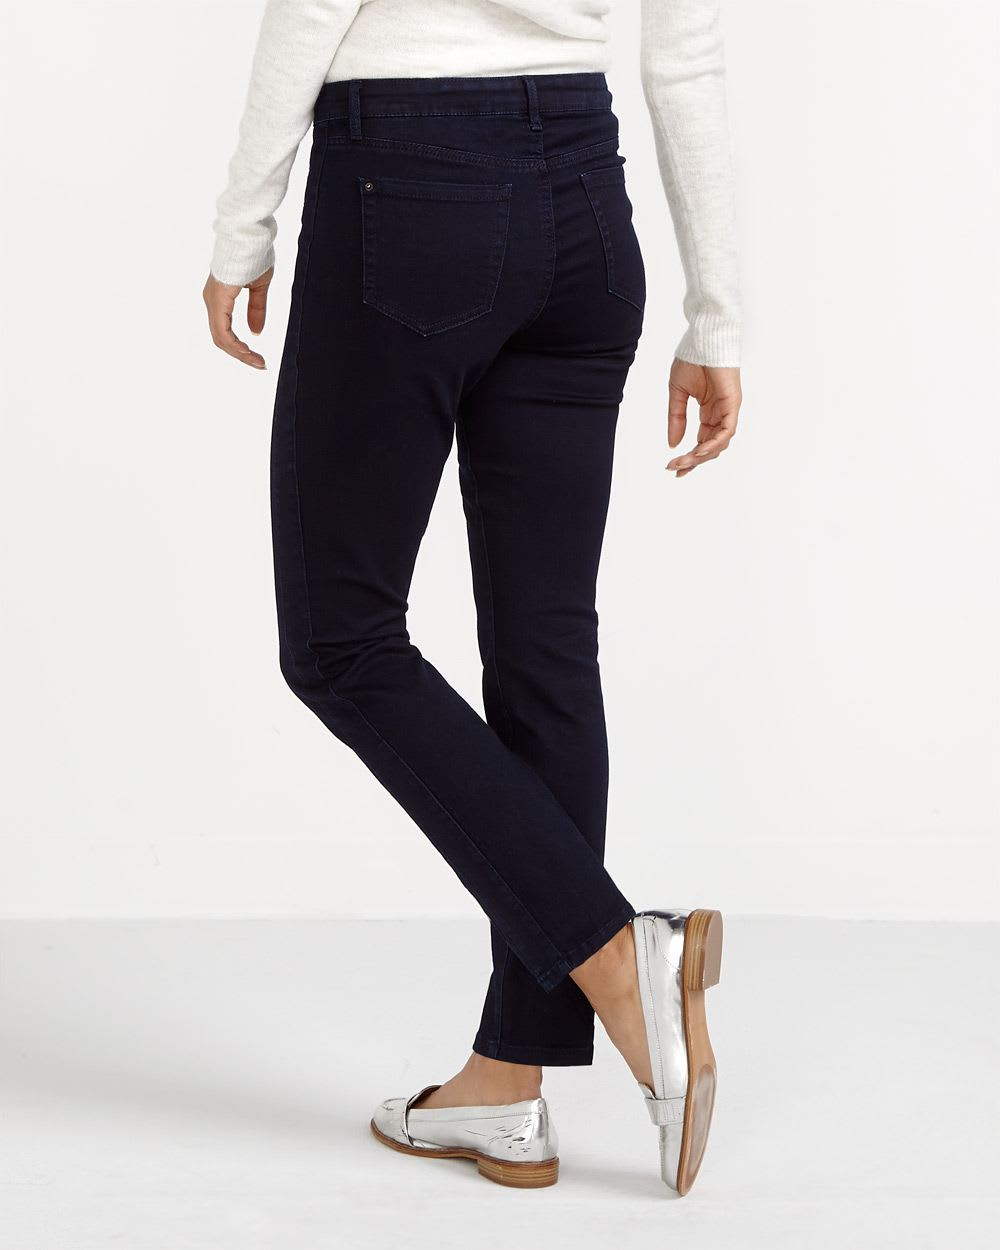 The Signature Soft Zip Skinny Jeans